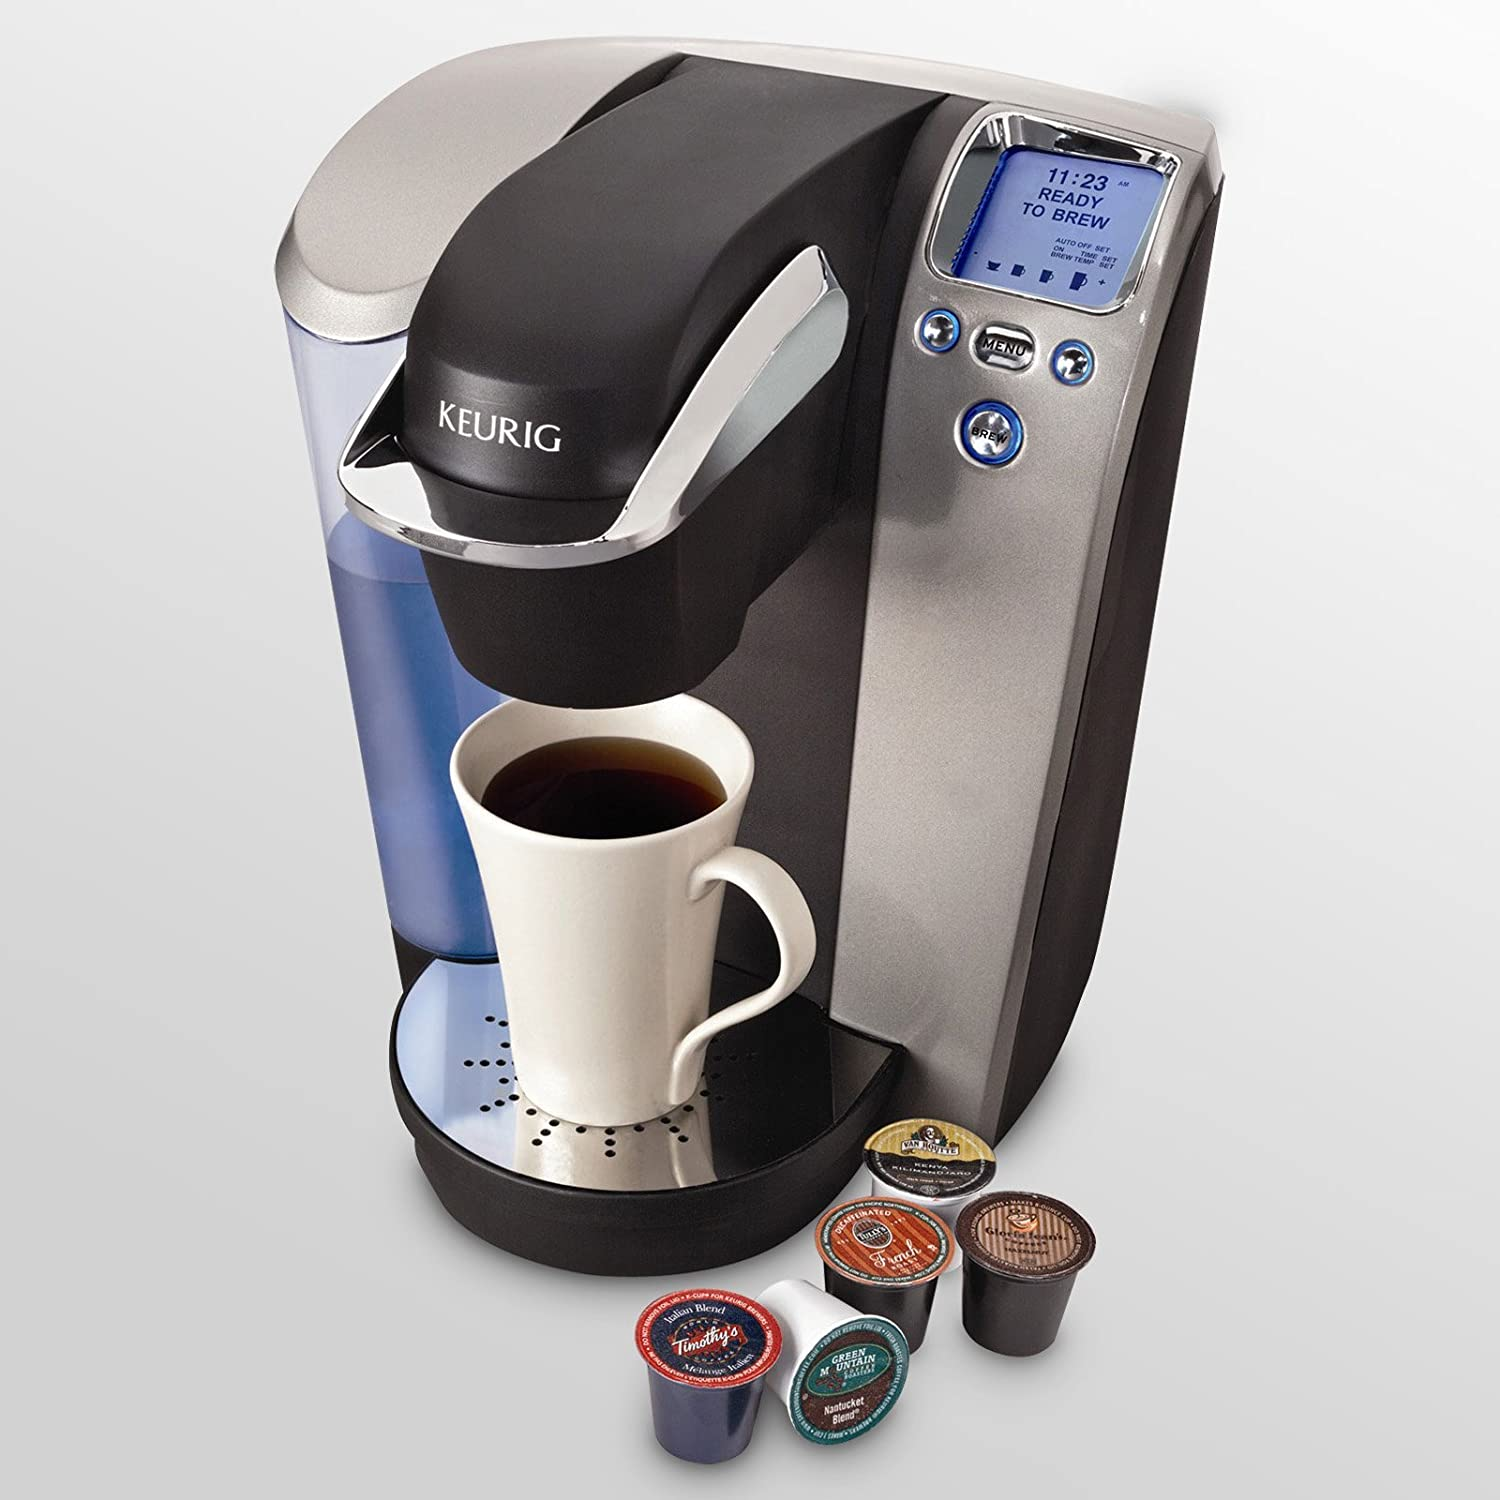 Keurig Coffee Maker Single Cup : Keurig vs Tassimo Single Cup Coffee Maker Comparison